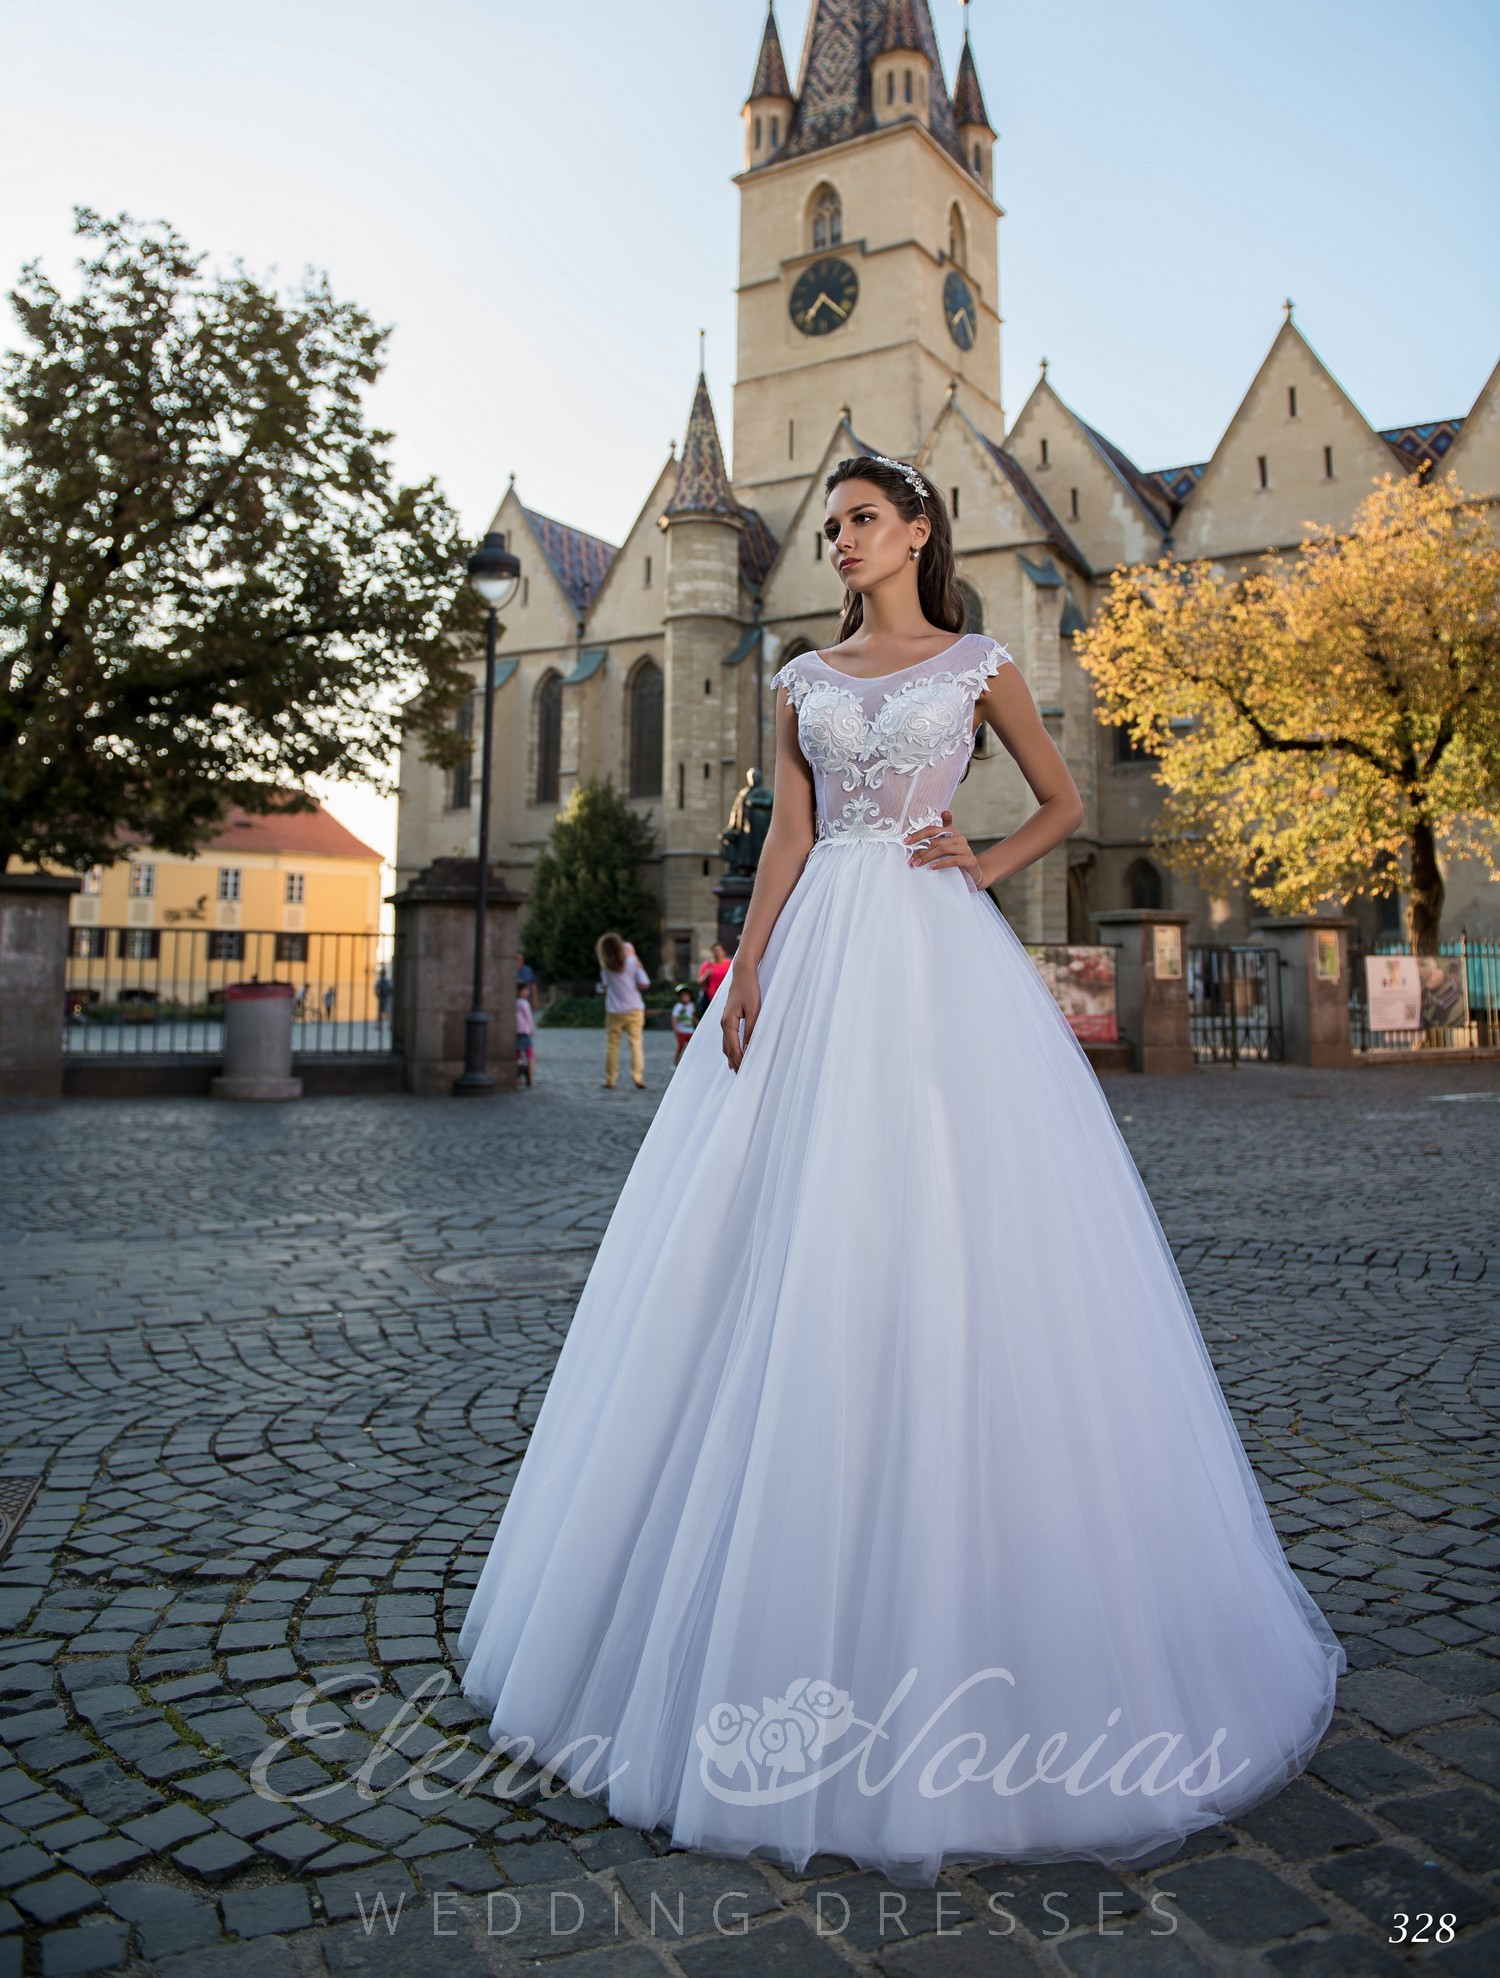 Wedding dress wholesale 328